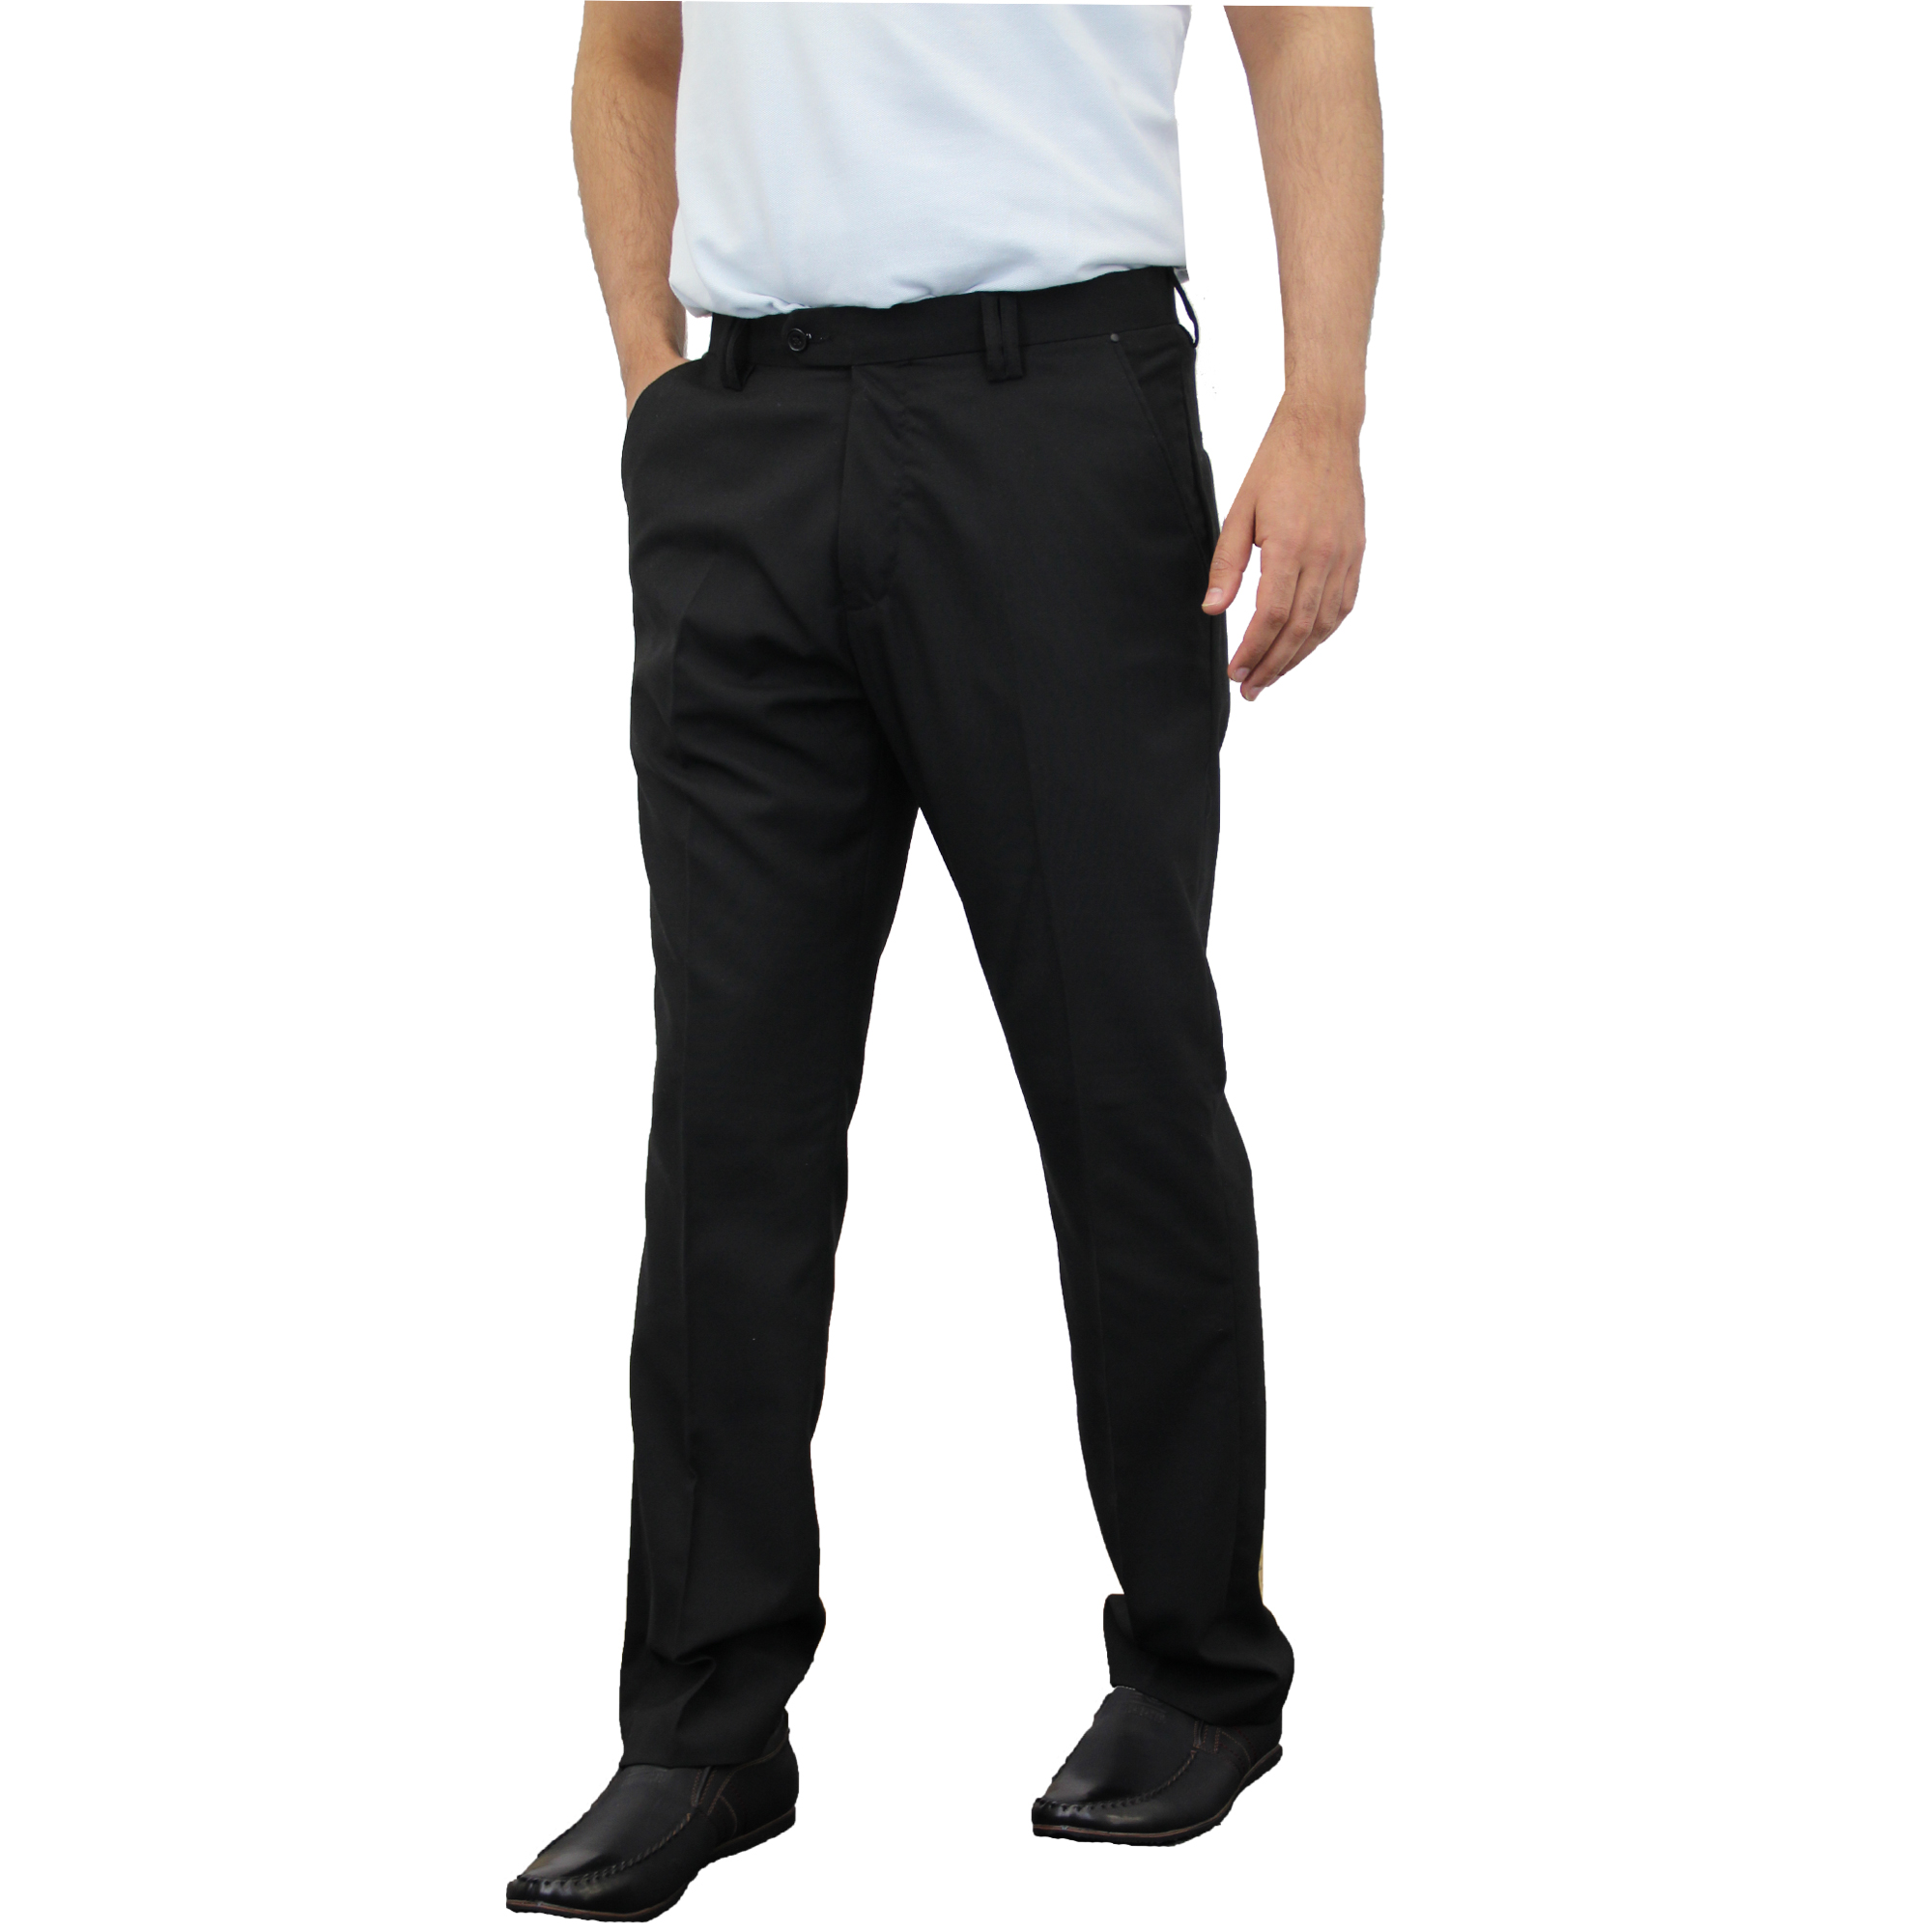 Mens Dress Clothes For Less